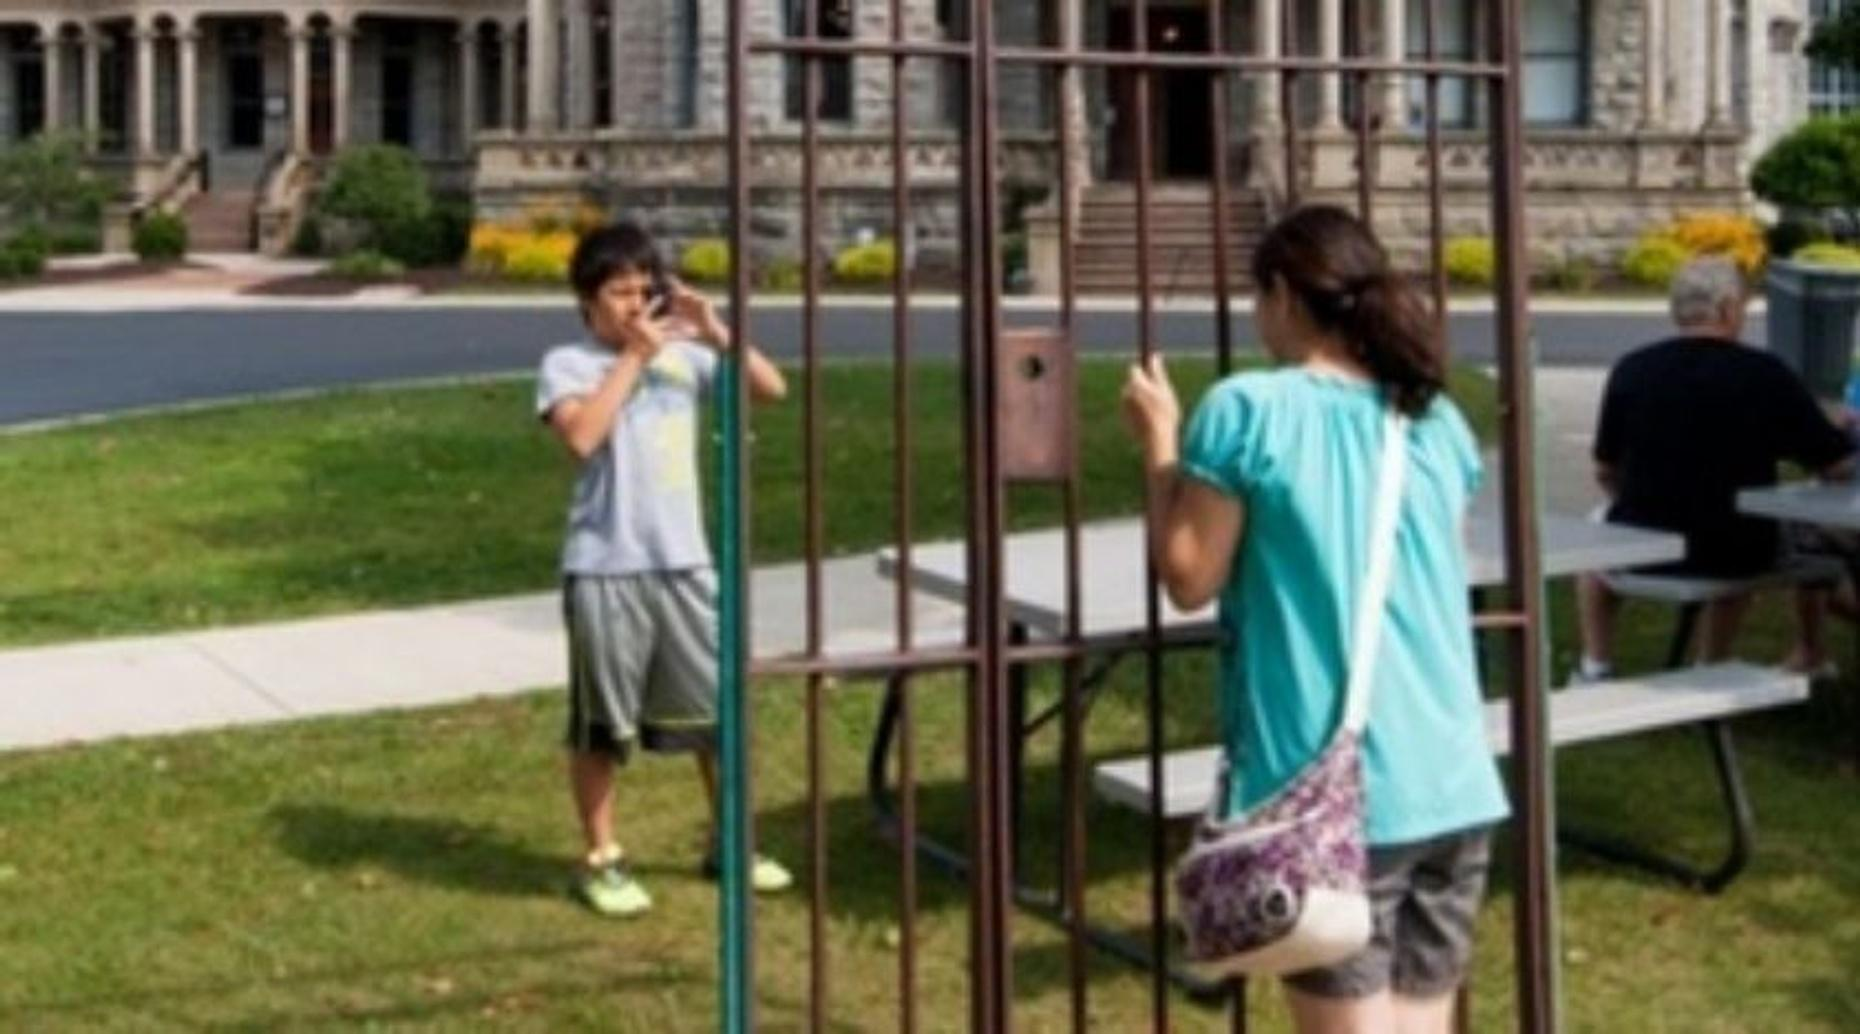 Ohio State Reformatory Public Guided Tour